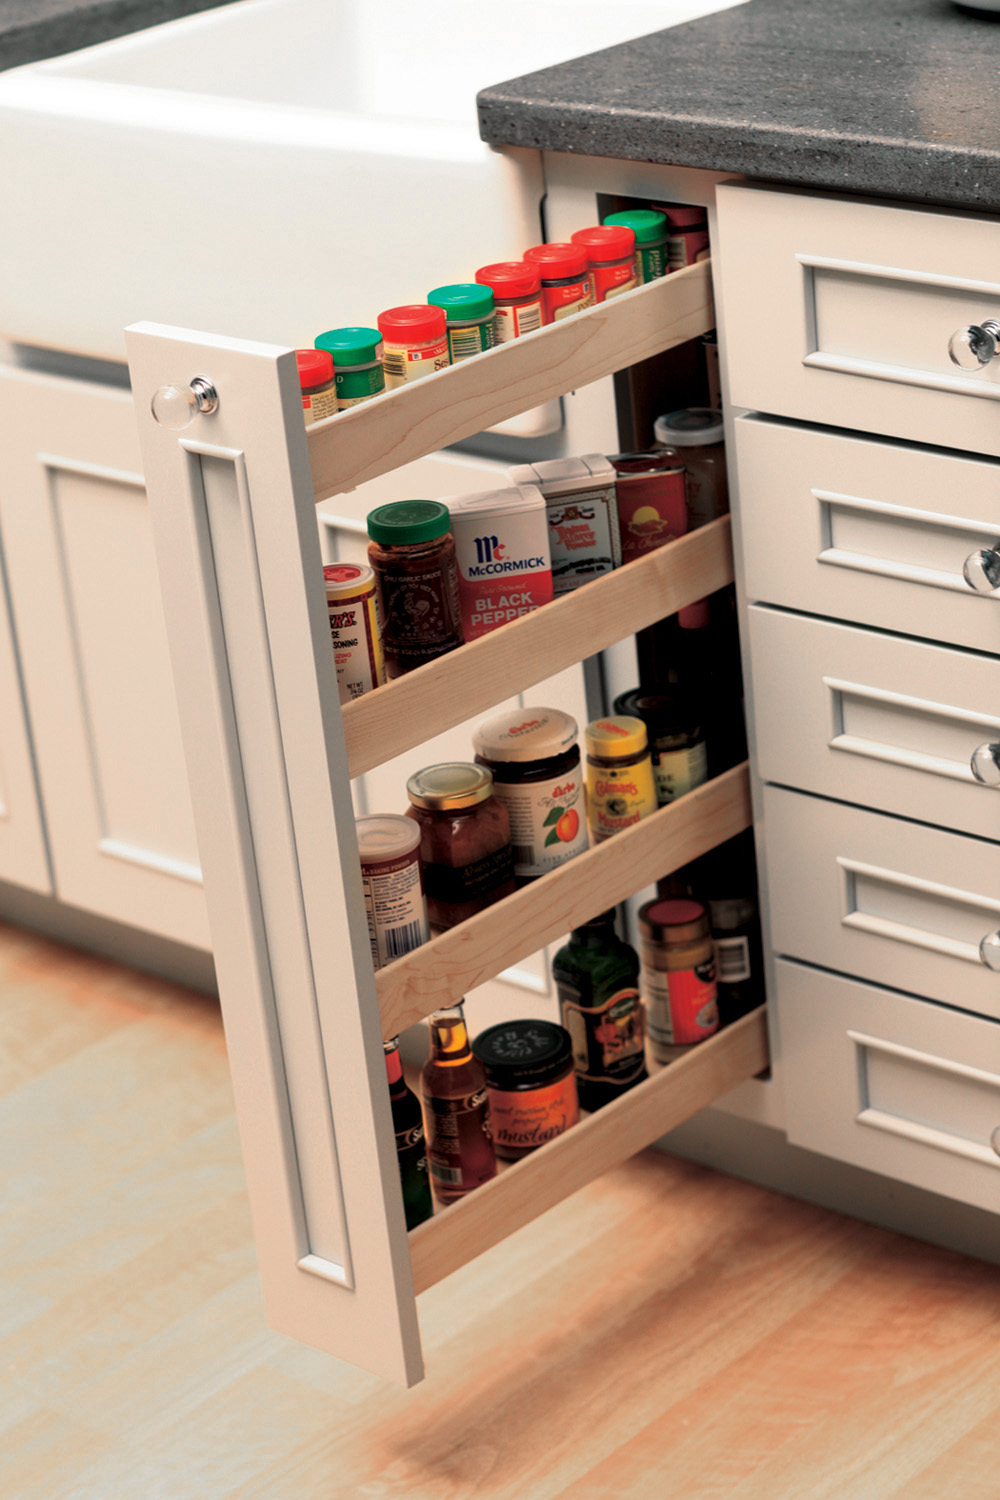 Small spaces offer a surprising amount of spice storage with a vertical Pull-Out Spice Rack. Kitchen Storage idea for spices and small pantry items from Dura Supreme Cabinetry.